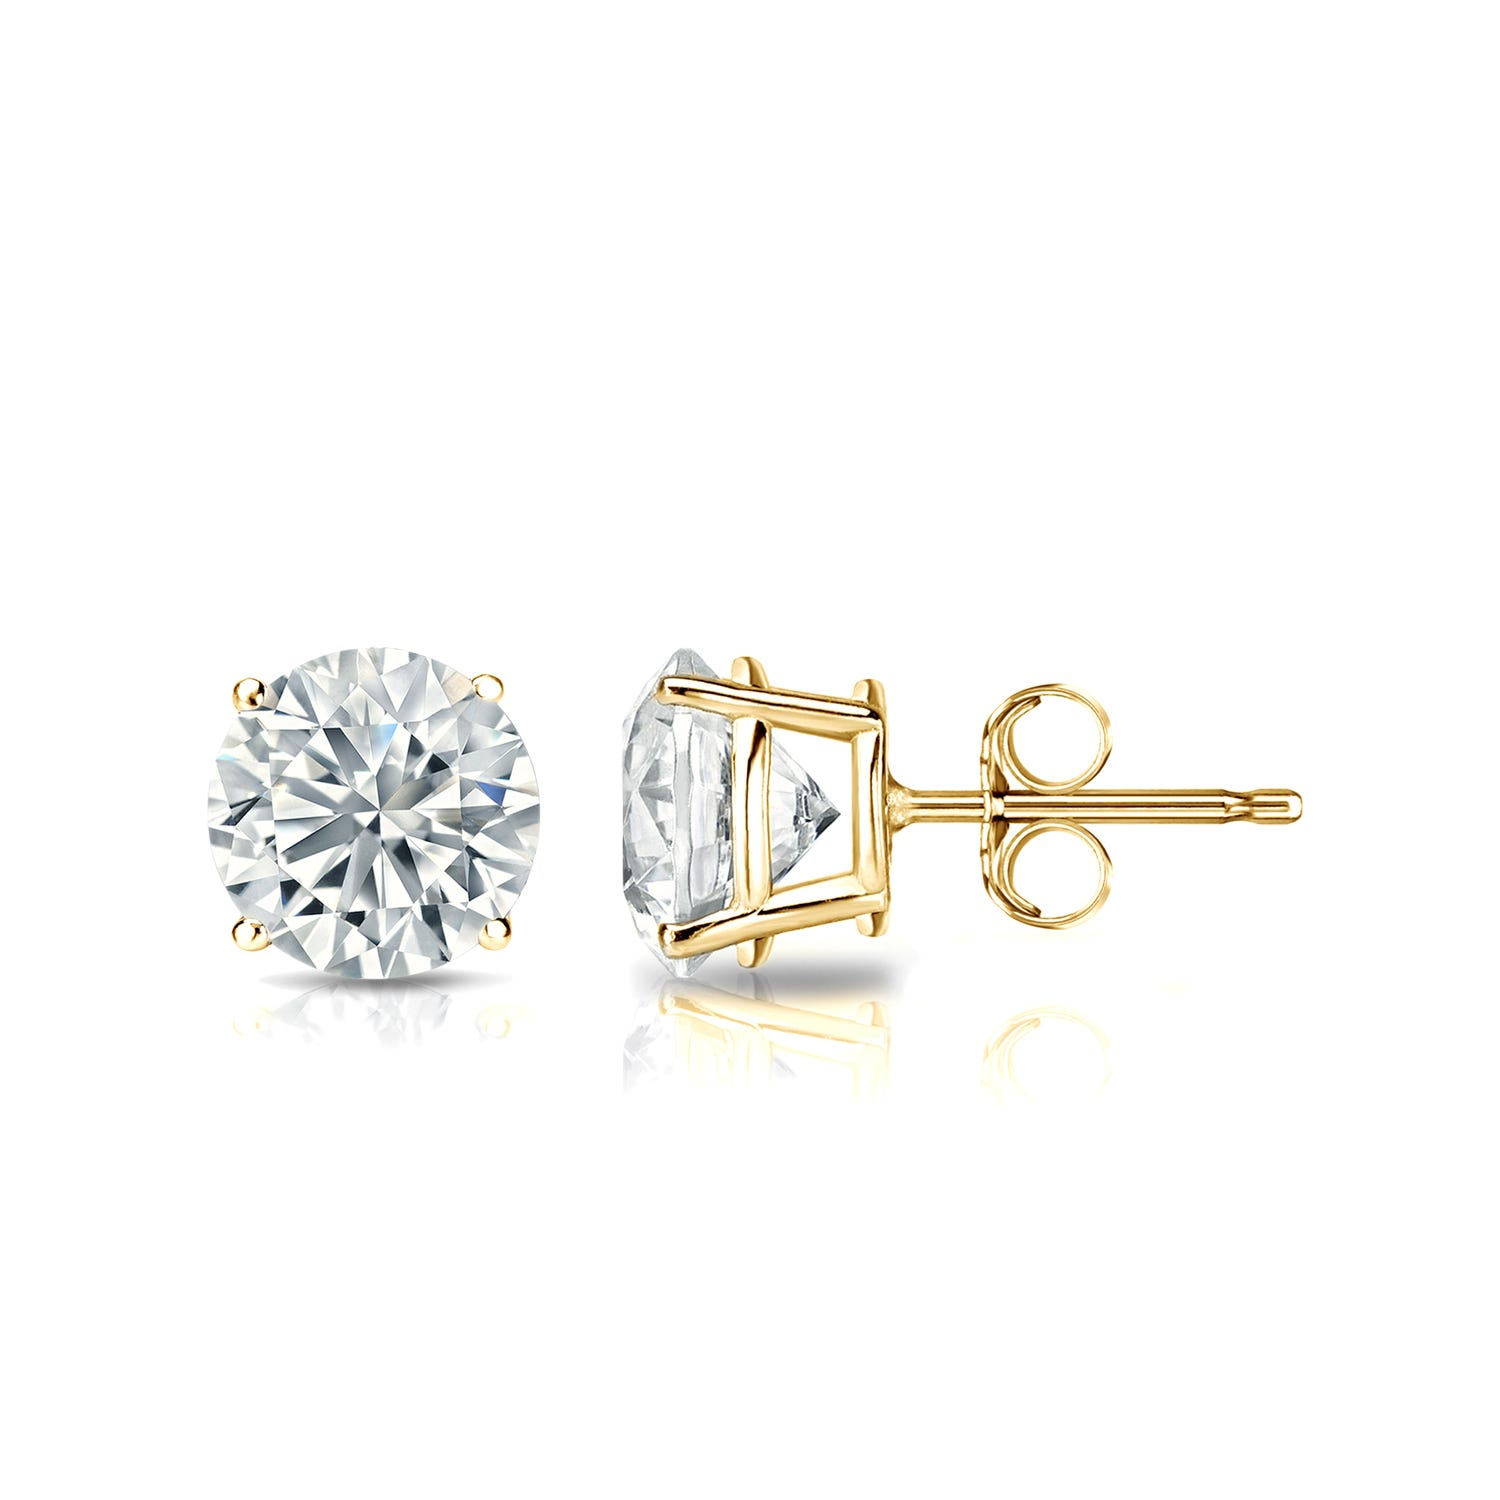 Diamond 1ctw. Round Solitaire Stud Earrings (I-J, SI1) 14k Yellow Gold